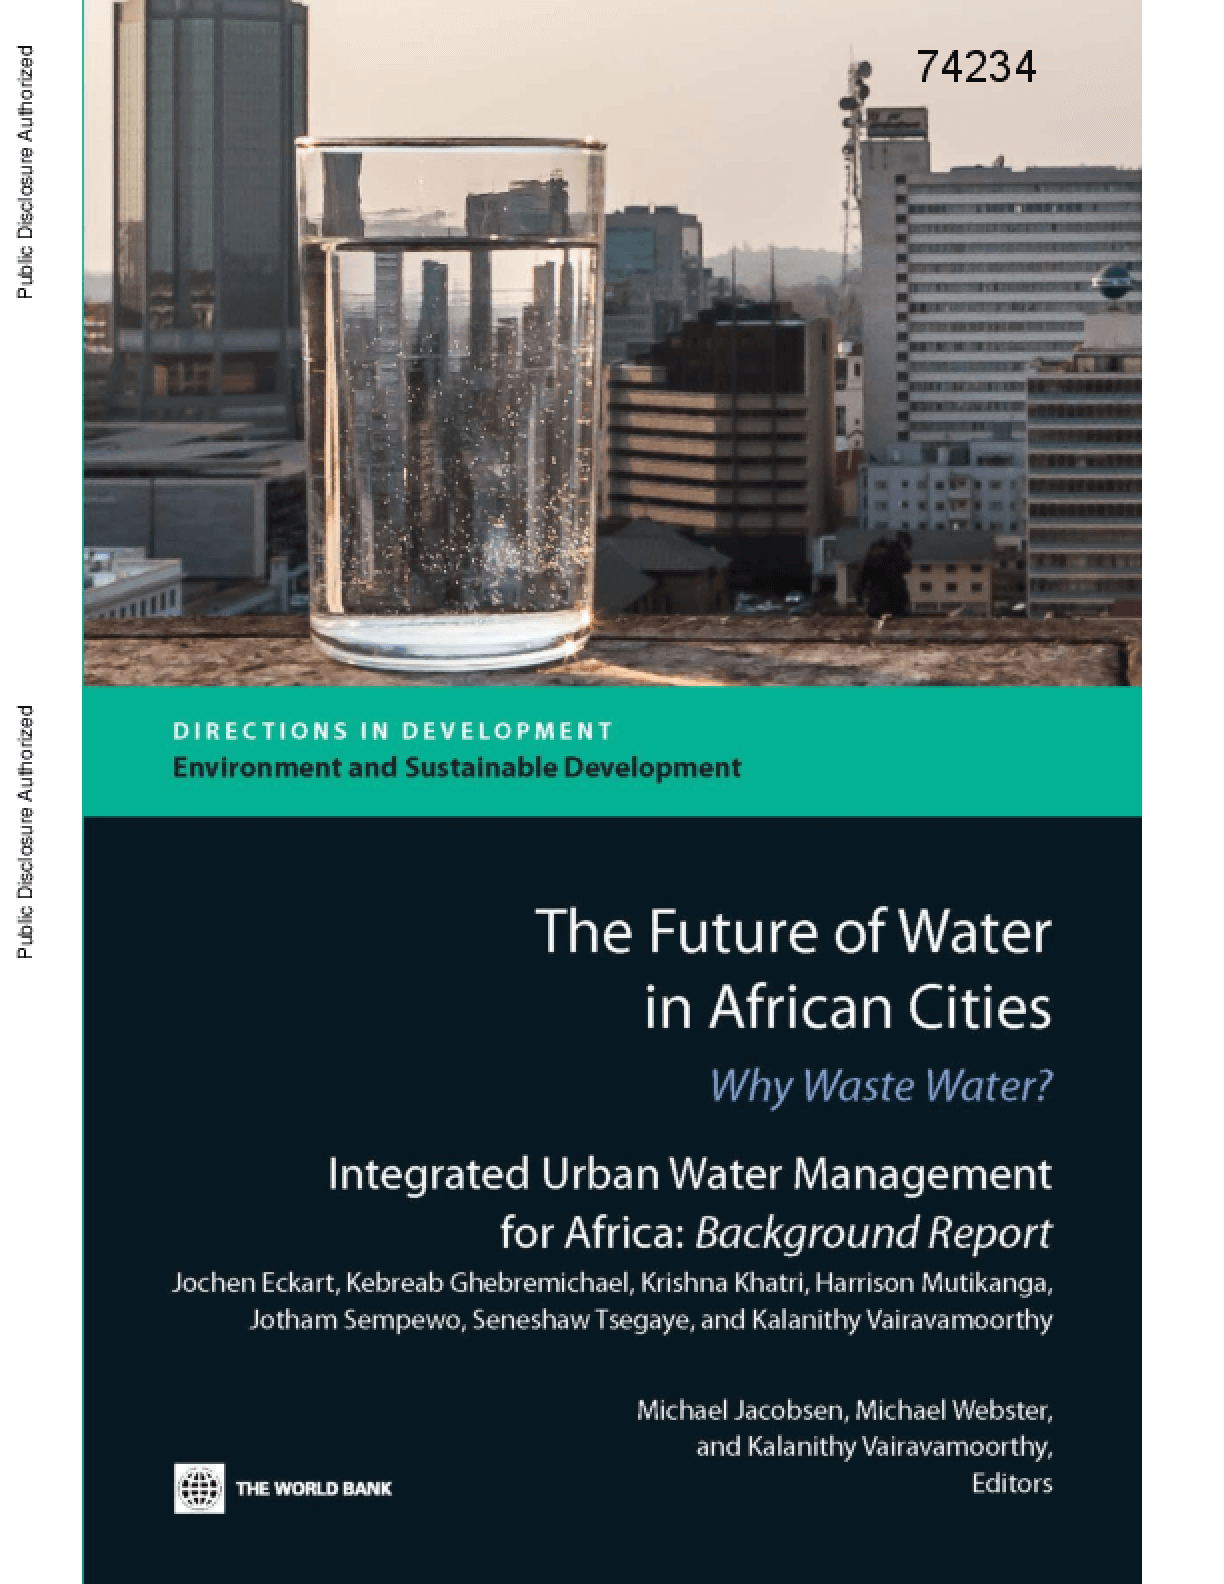 The Future of Water in African Cities: Why Waste Water? - Integrated Urban Water Management for Africa: Background Report